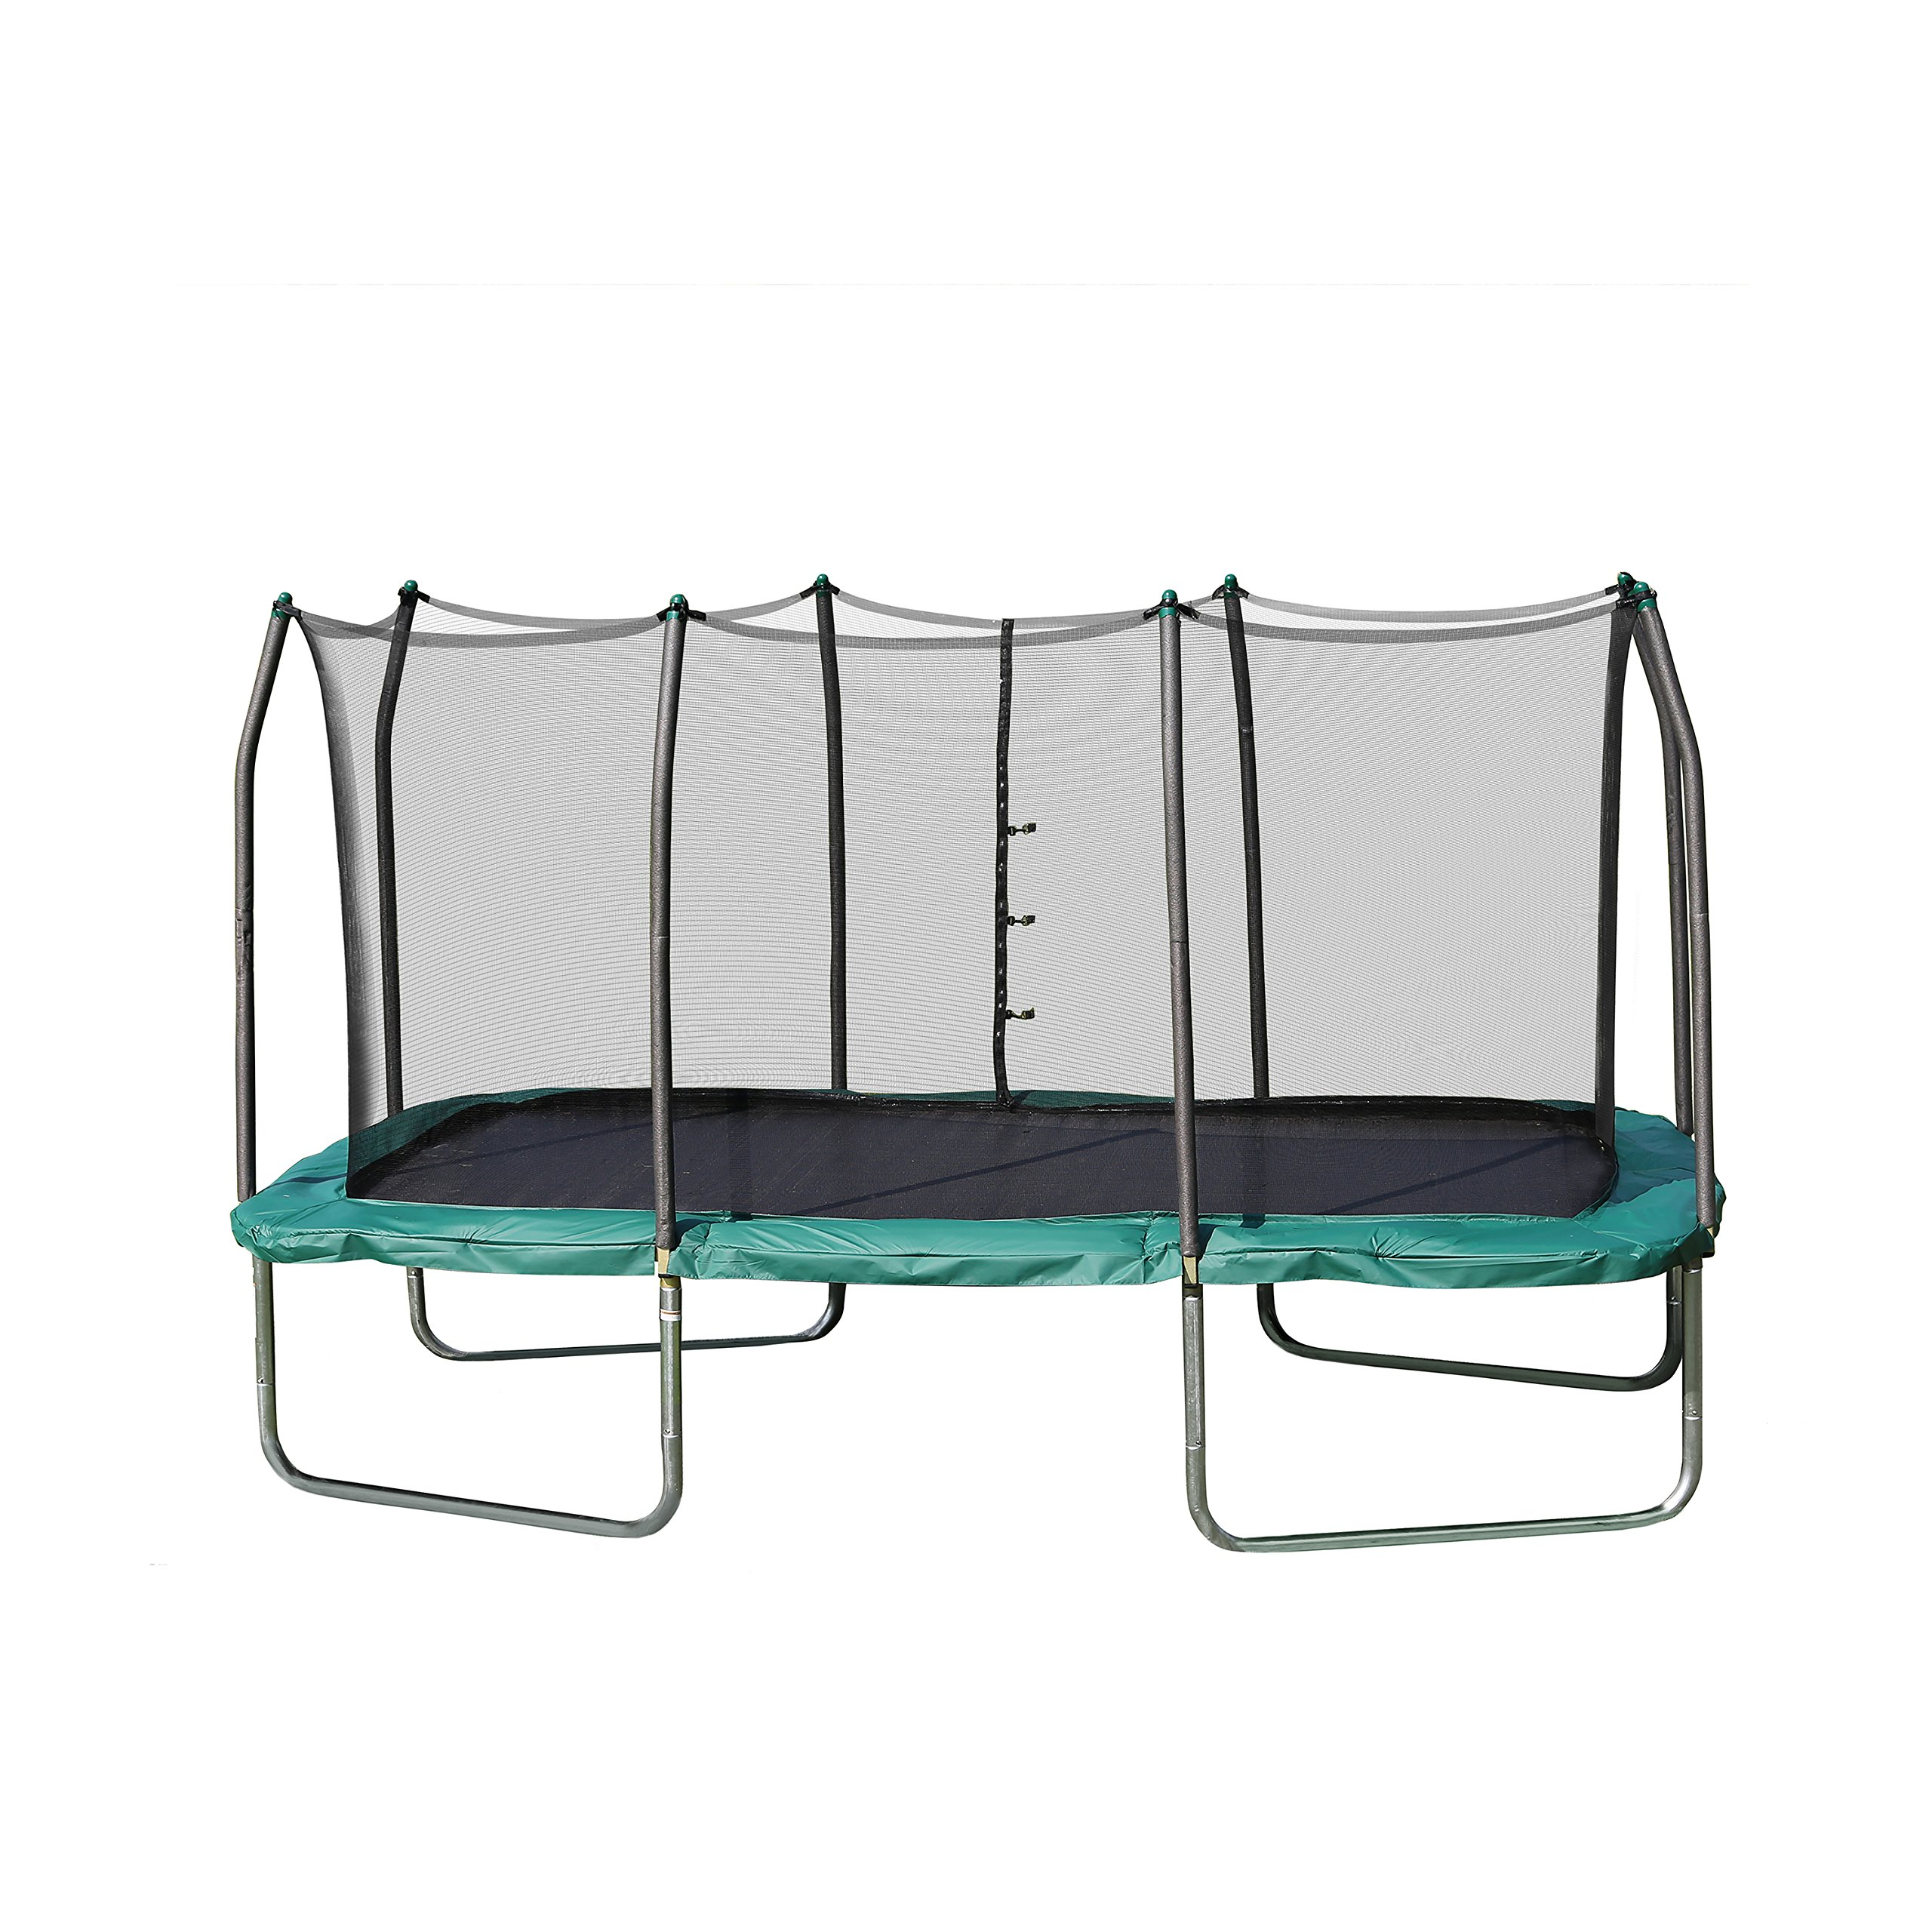 Skywalker Trampolines Rectangle Trampoline and Enclosure with Green Spring Pad, 8 X 14-Feet by Skywalker Trampolines